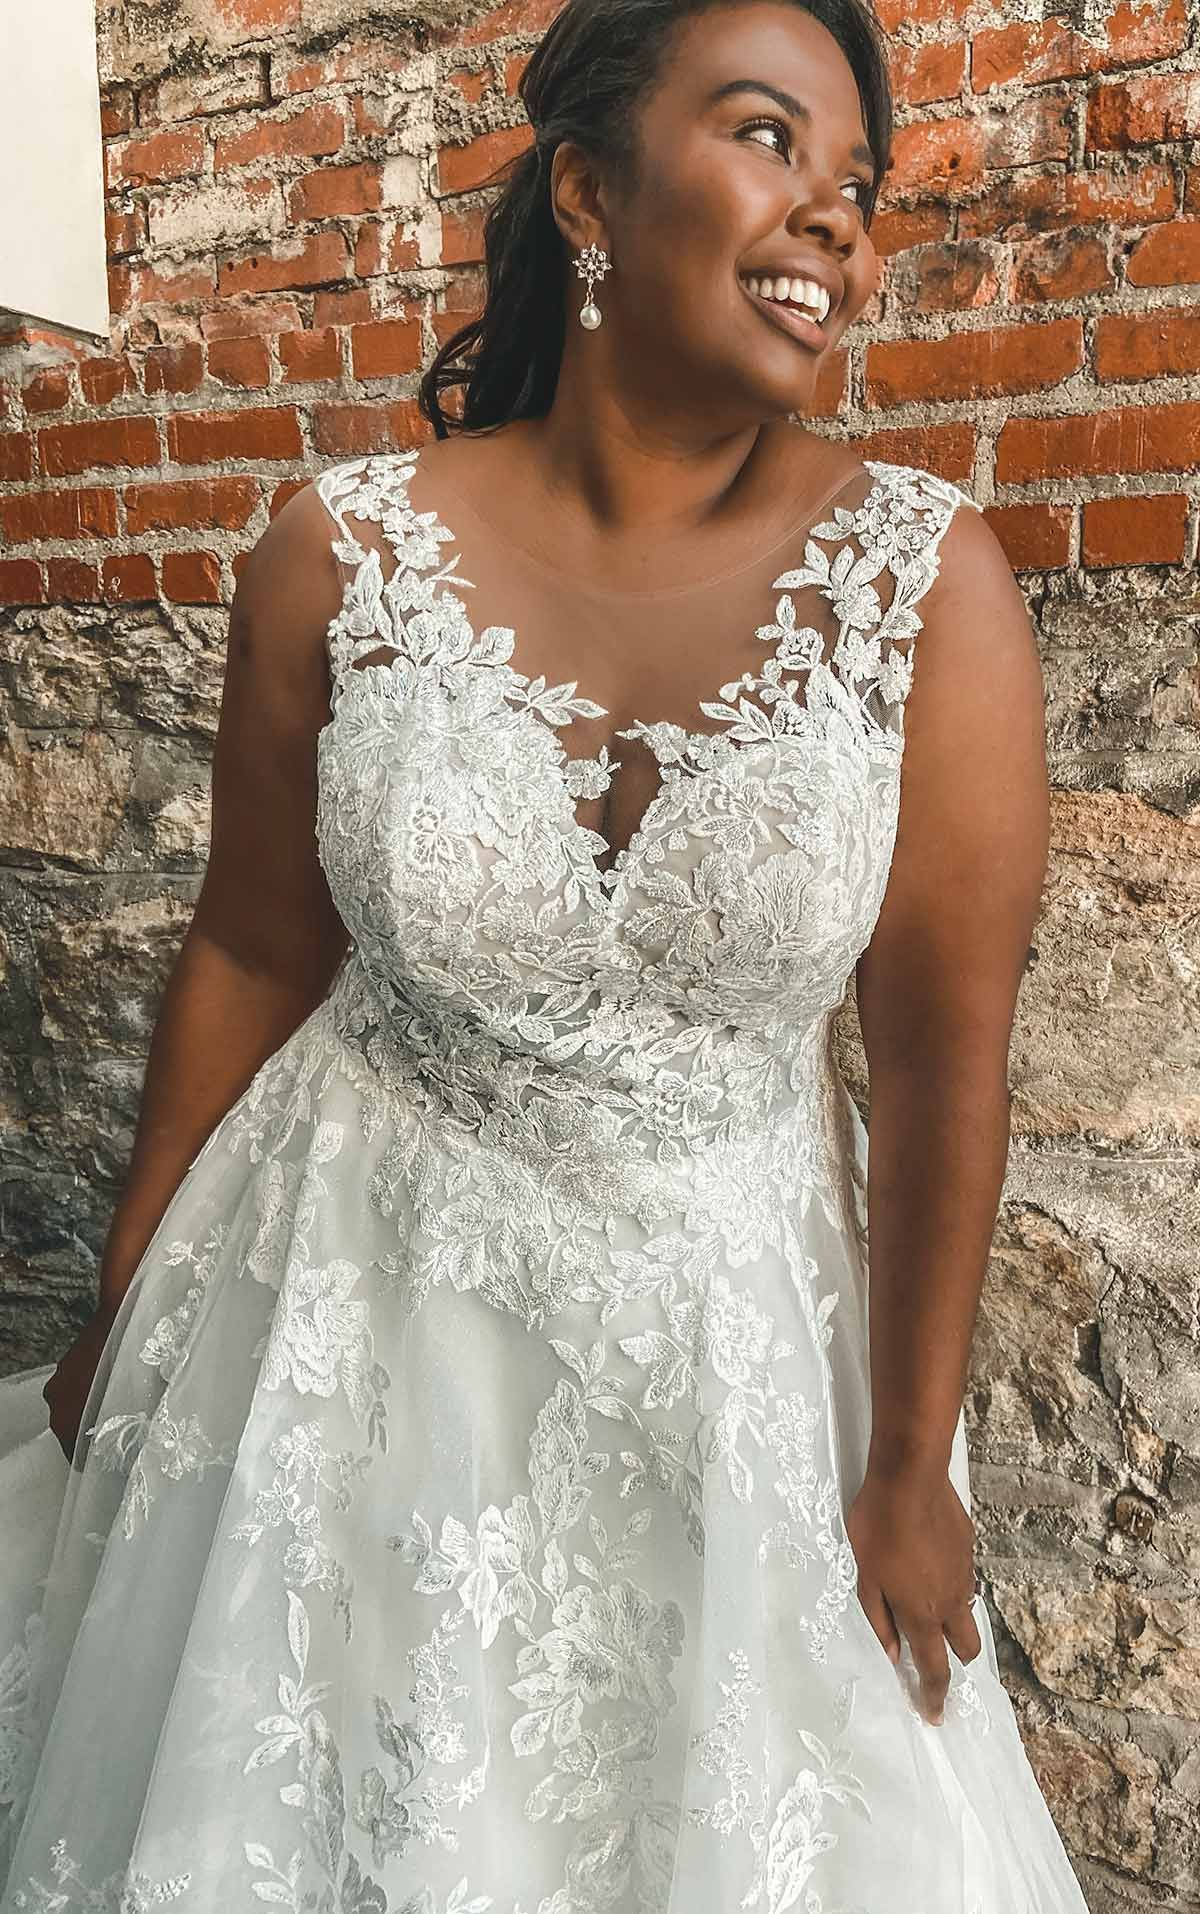 Lace A Line Plus Size Wedding Dress With Long Sleeves Michelle S Bridal And Tuxedo In 2021 Curvy Wedding Dress Long Sleeve Wedding Dress Lace Wedding Dresses [ 1914 x 1200 Pixel ]